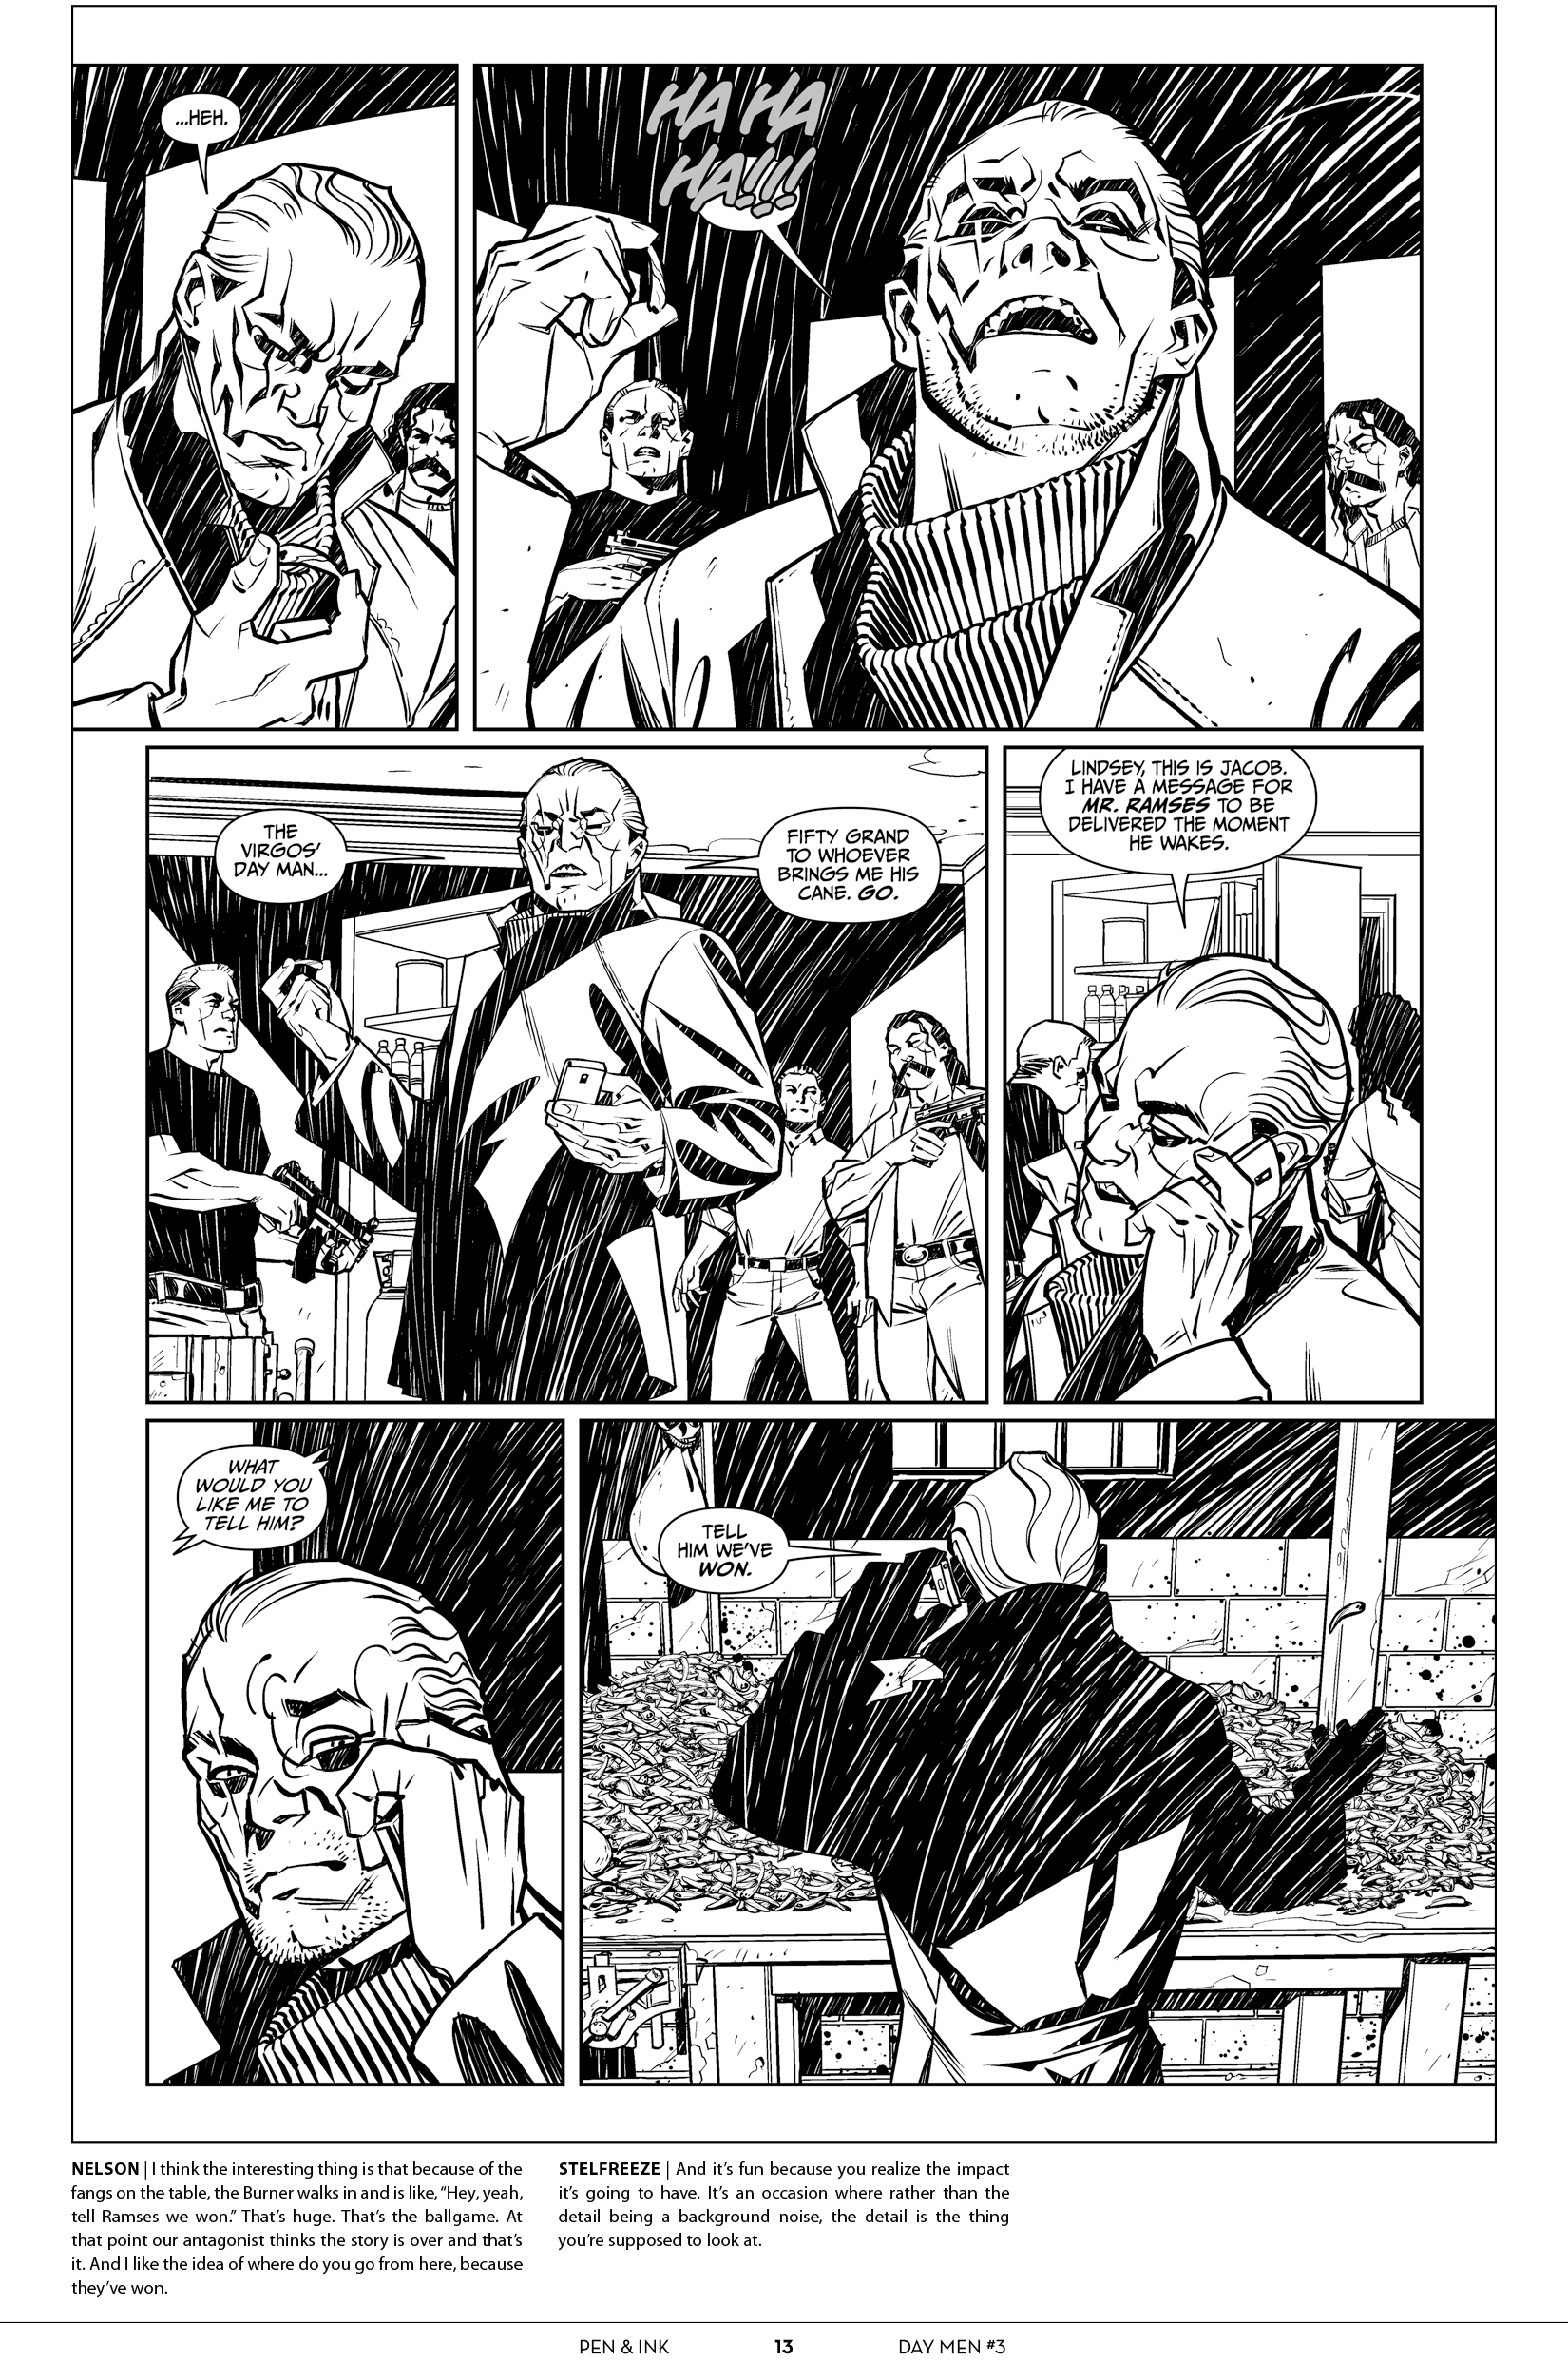 BOOM_Pen_and_Ink_Day_Men_002_PRESS-13.jpg